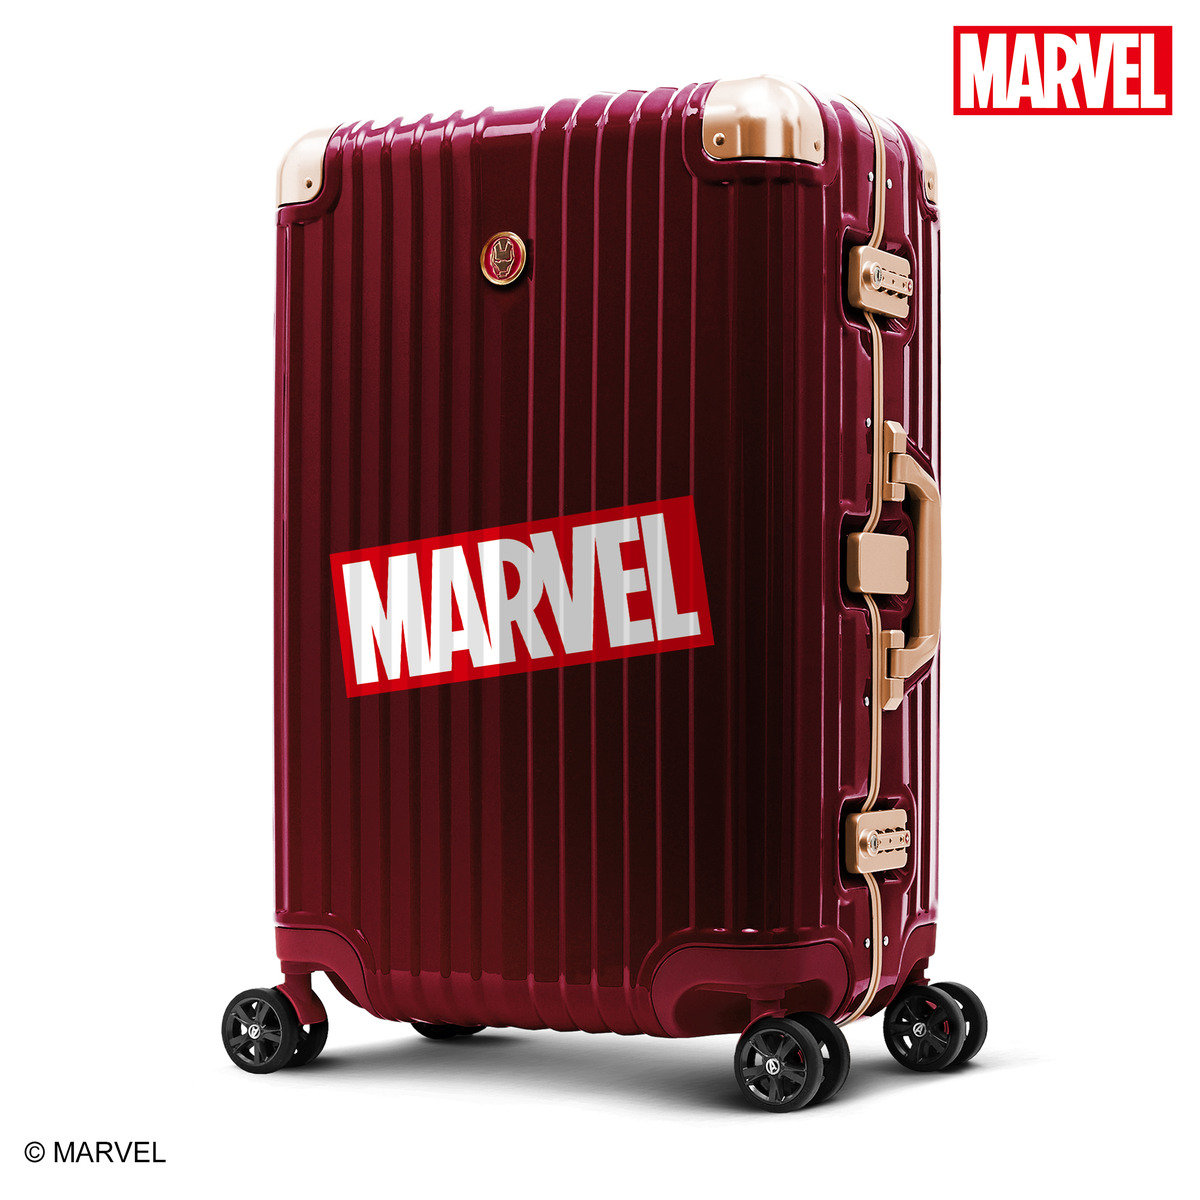 "Avengers IRON MAN 29"" Aluminum Frame Luggage(Licensed by Disney)"